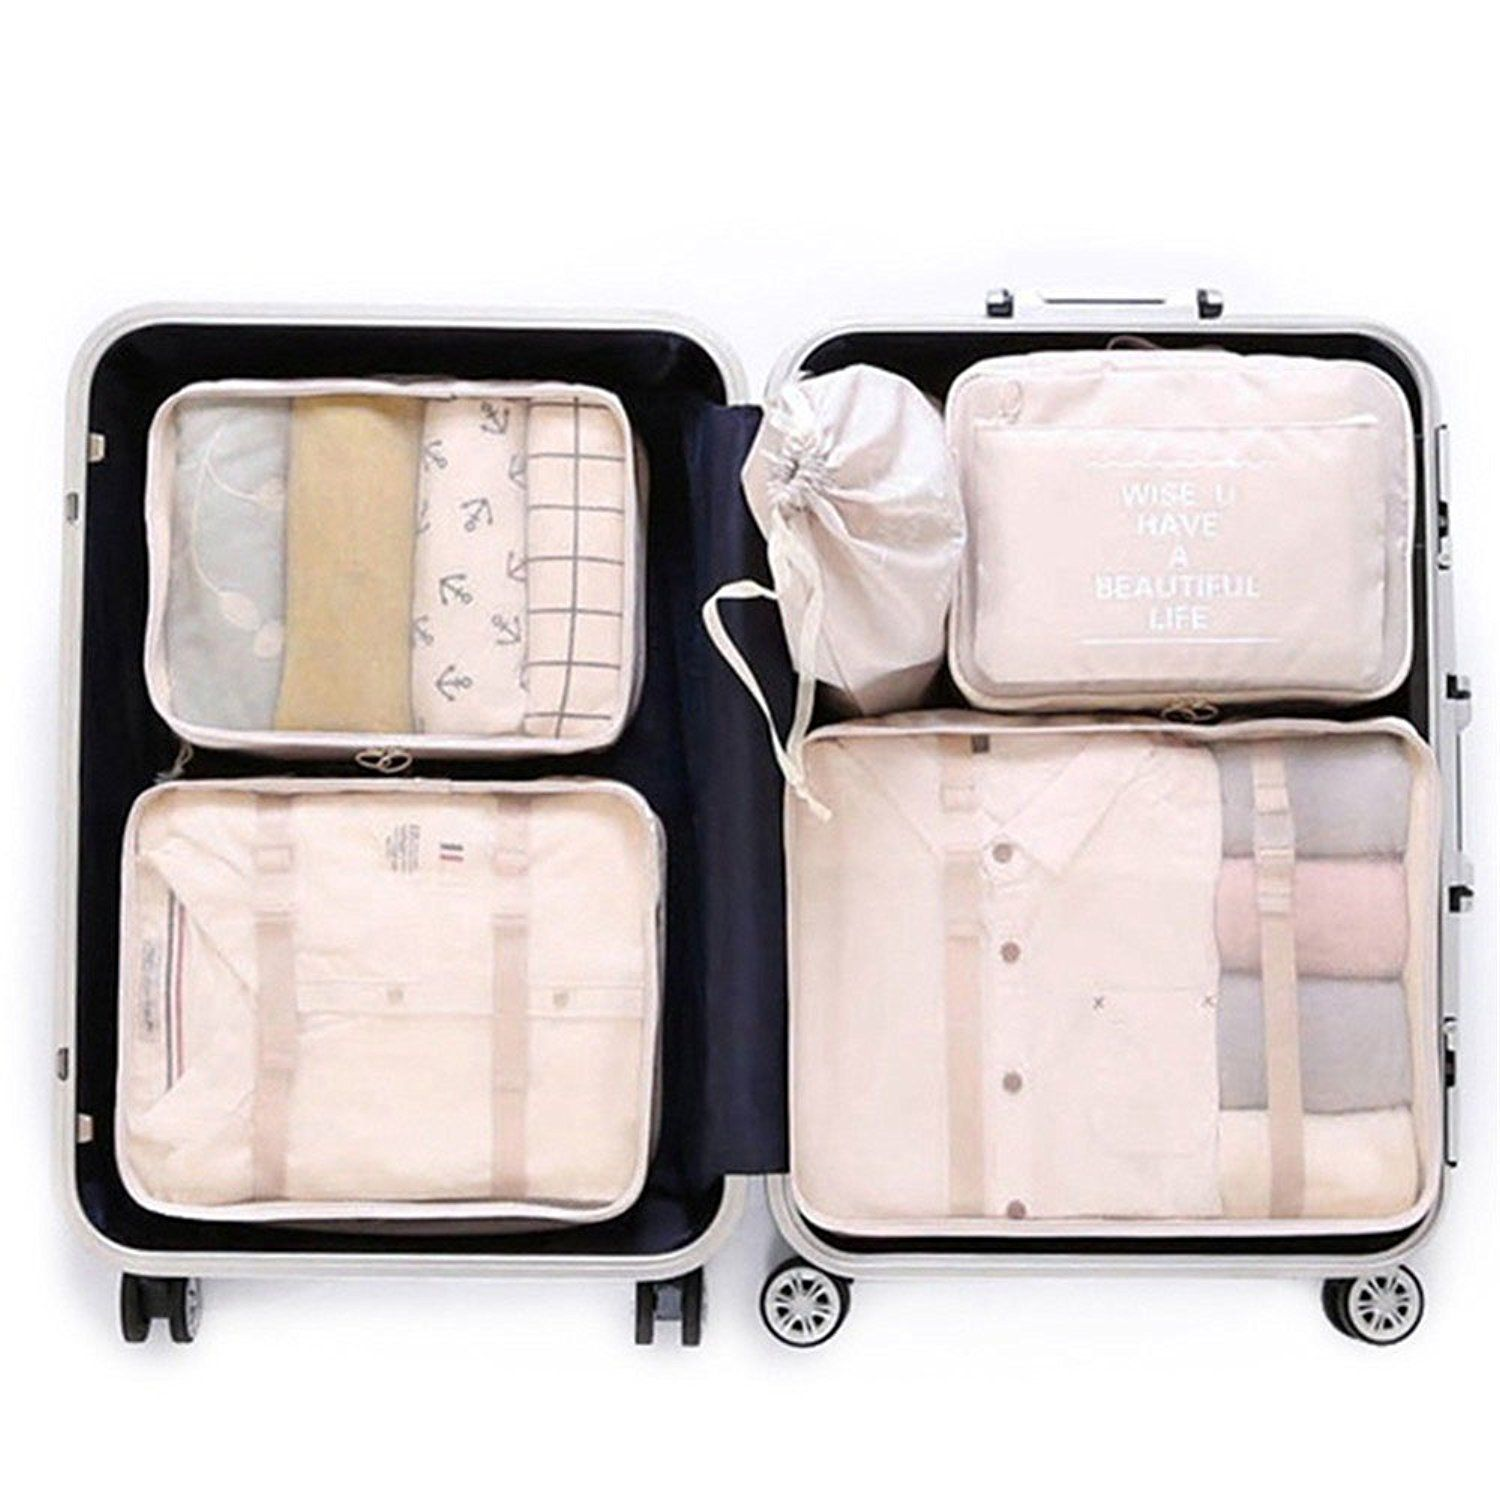 Luggage Packing Organizers Packing Cubes Set For Travel Travel On The Fly Acessorios De Viagem Malas De Viagem Fazer As Malas De Viagem